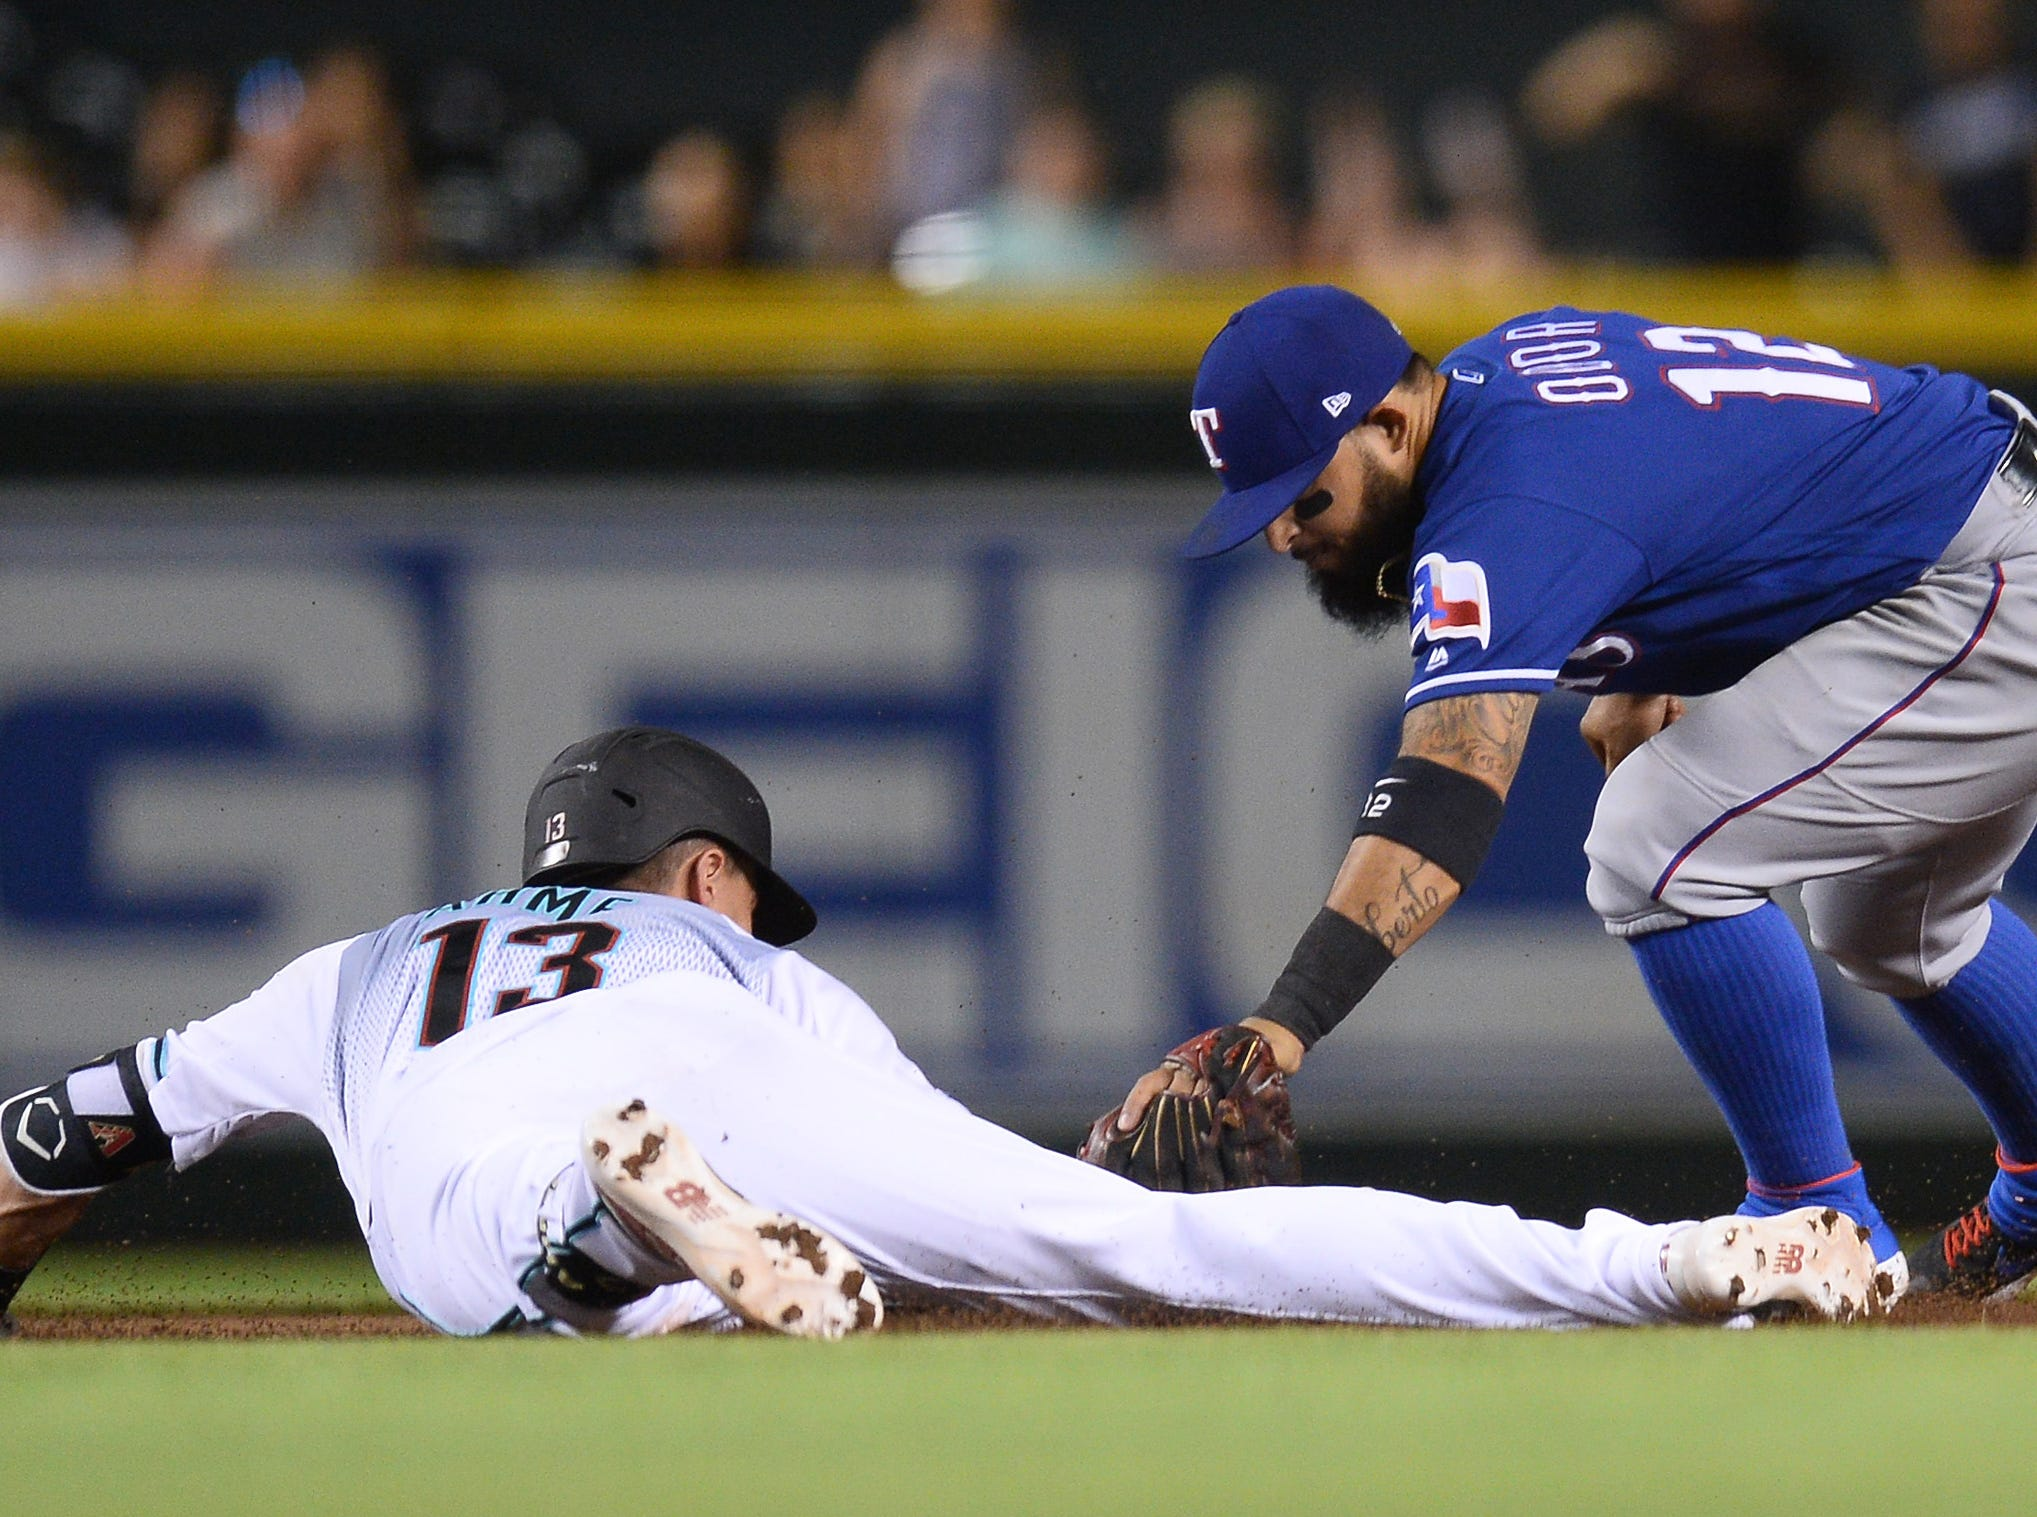 Apr 9, 2019; Phoenix, AZ, USA; Arizona Diamondbacks shortstop Nick Ahmed (13) beats the tag of Texas Rangers second baseman Rougned Odor (12) at second base during the fifth inning at Chase Field. Mandatory Credit: Joe Camporeale-USA TODAY Sports